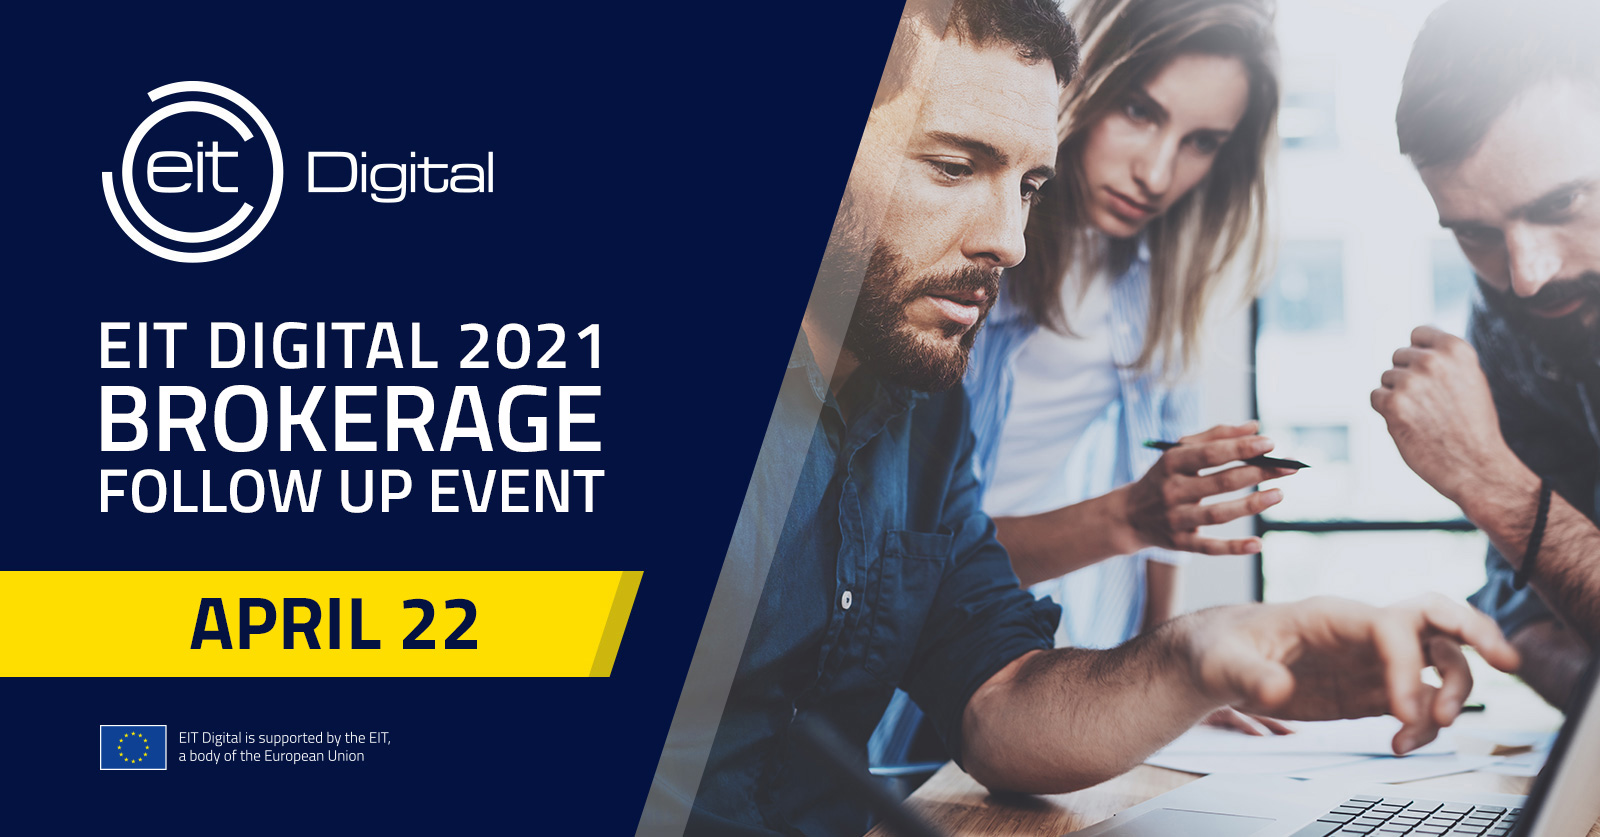 EIT Digital 2021: Brokerage Follow Up Event